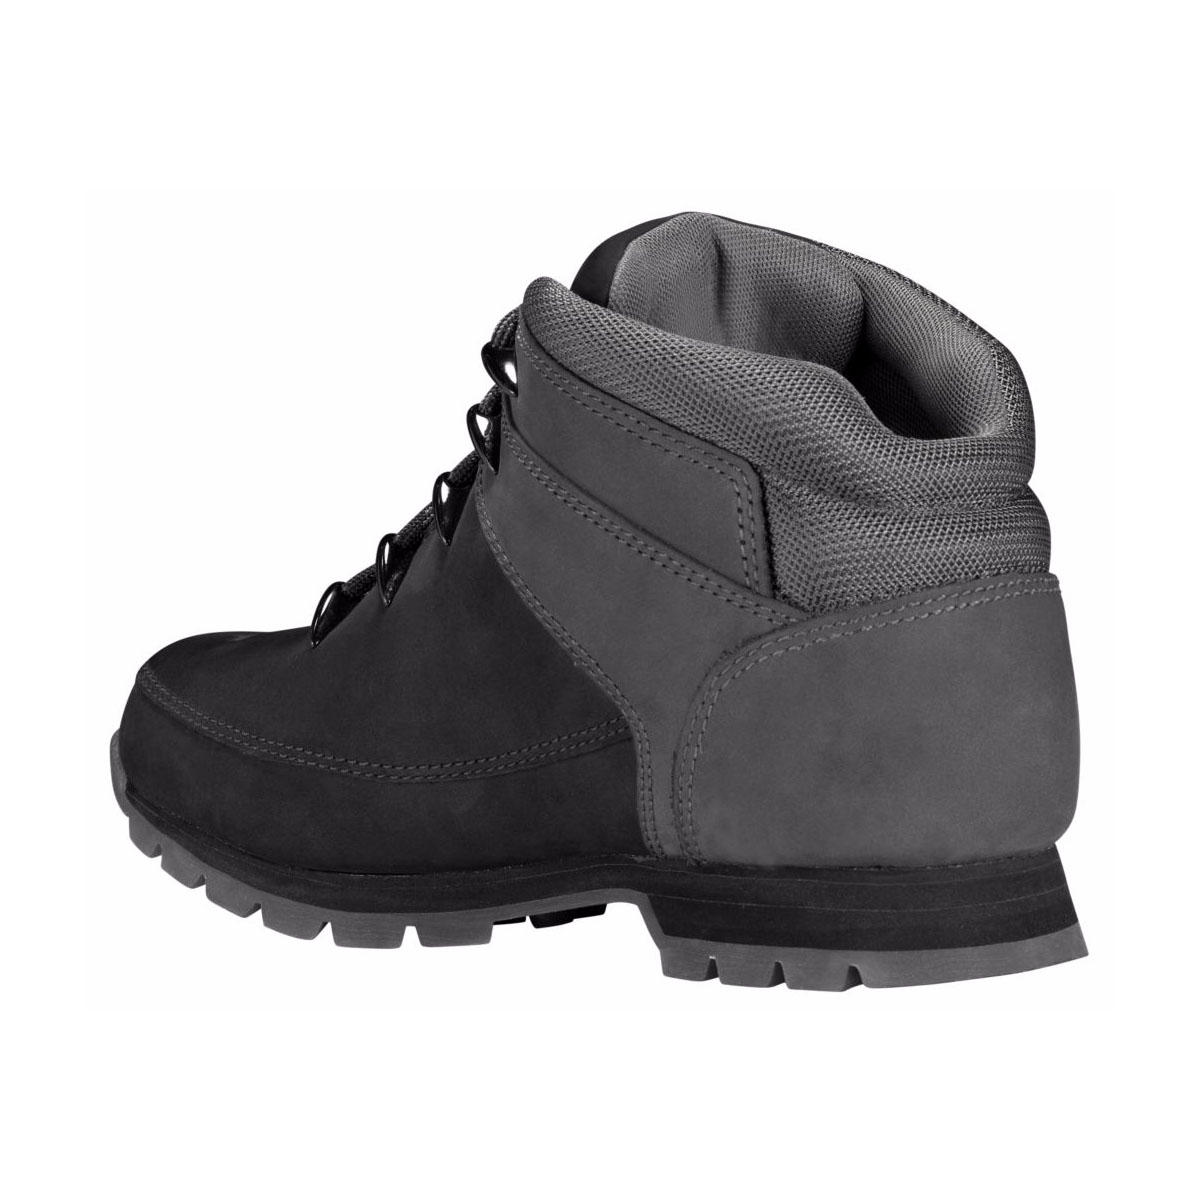 New-Timberland-Euro-Sprint-Hiker-Mens-Leather-Boots-Shoes-NIB-All-Colors-Sizes thumbnail 52